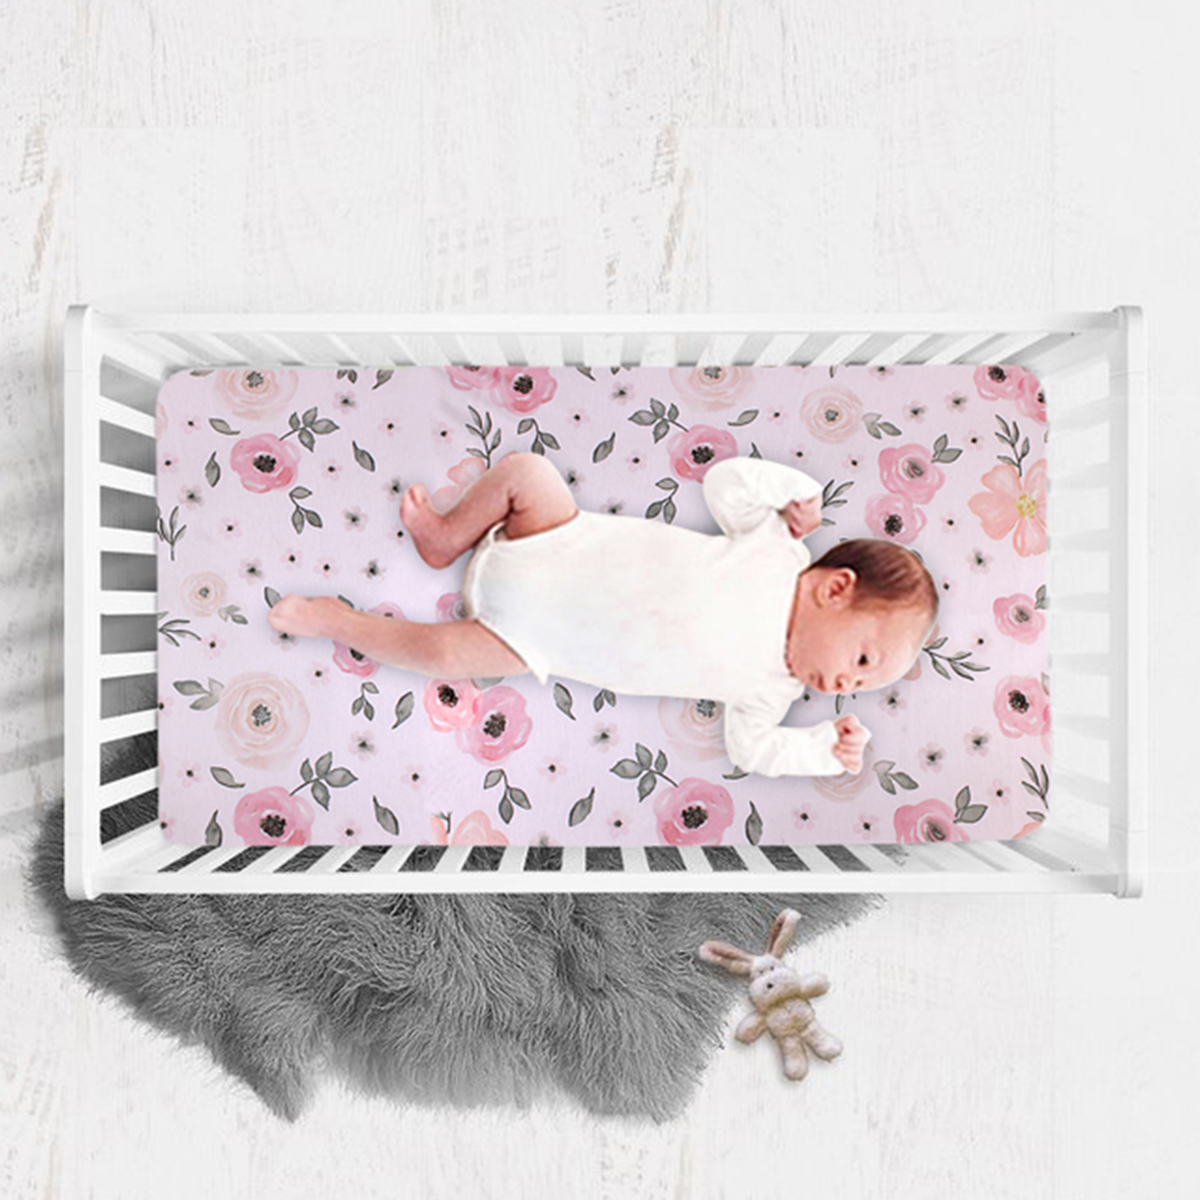 100% Cotton Crib Fitted Sheet Soft Breathable Baby Bed Mattress Cover Cartoon Newborn Bedding For Cot Size 52*28 Inch